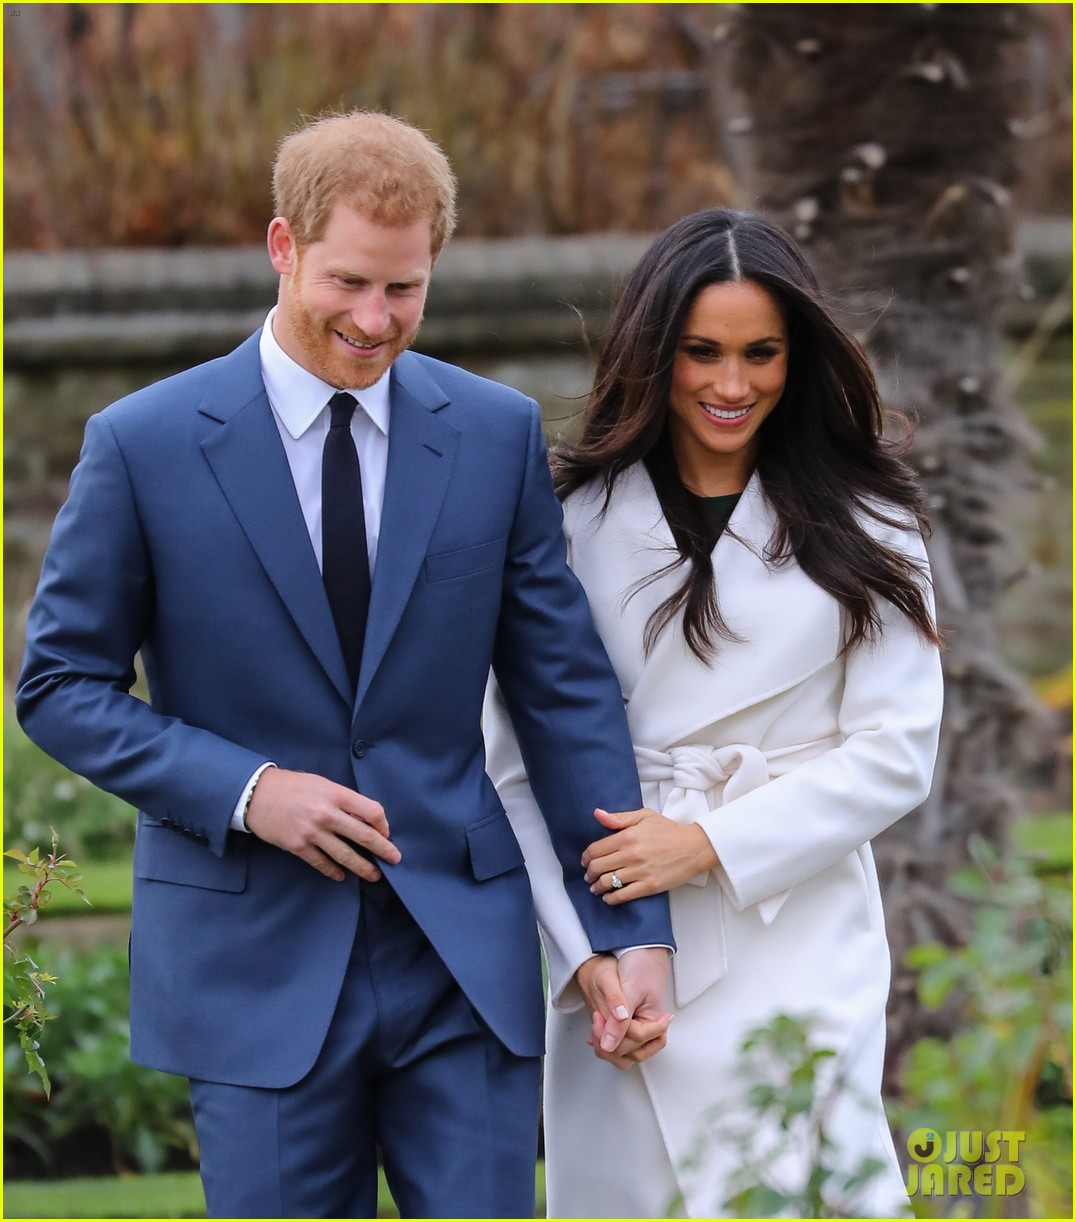 Meghan Markle Reveals How Prince Harry Proposed In First